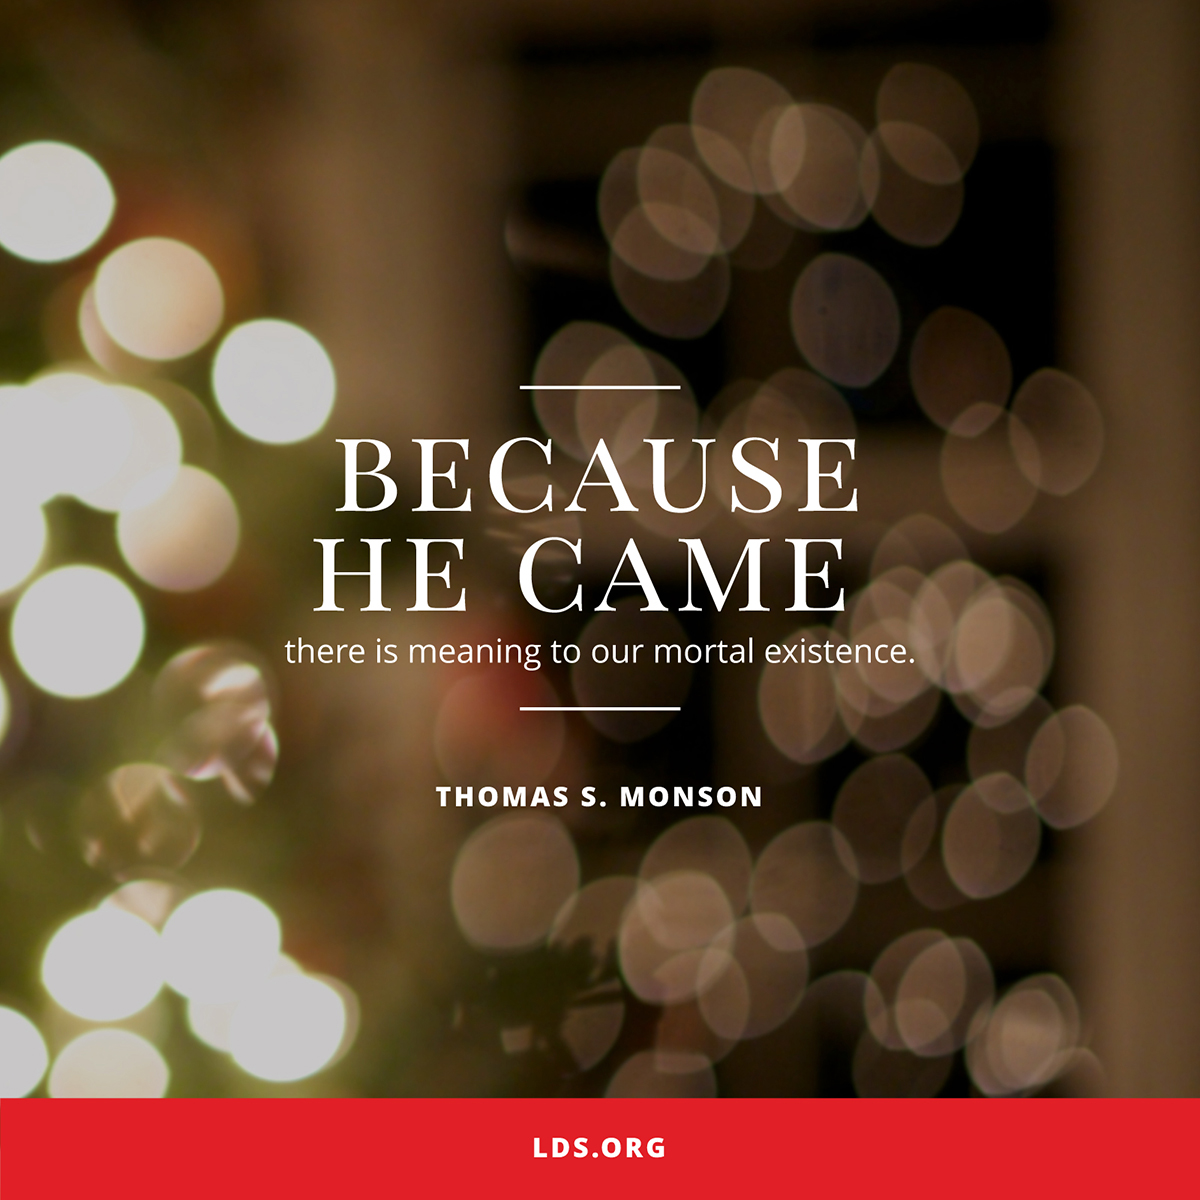 109 Best Christmas Lds Images On Pinterest: Because He Came